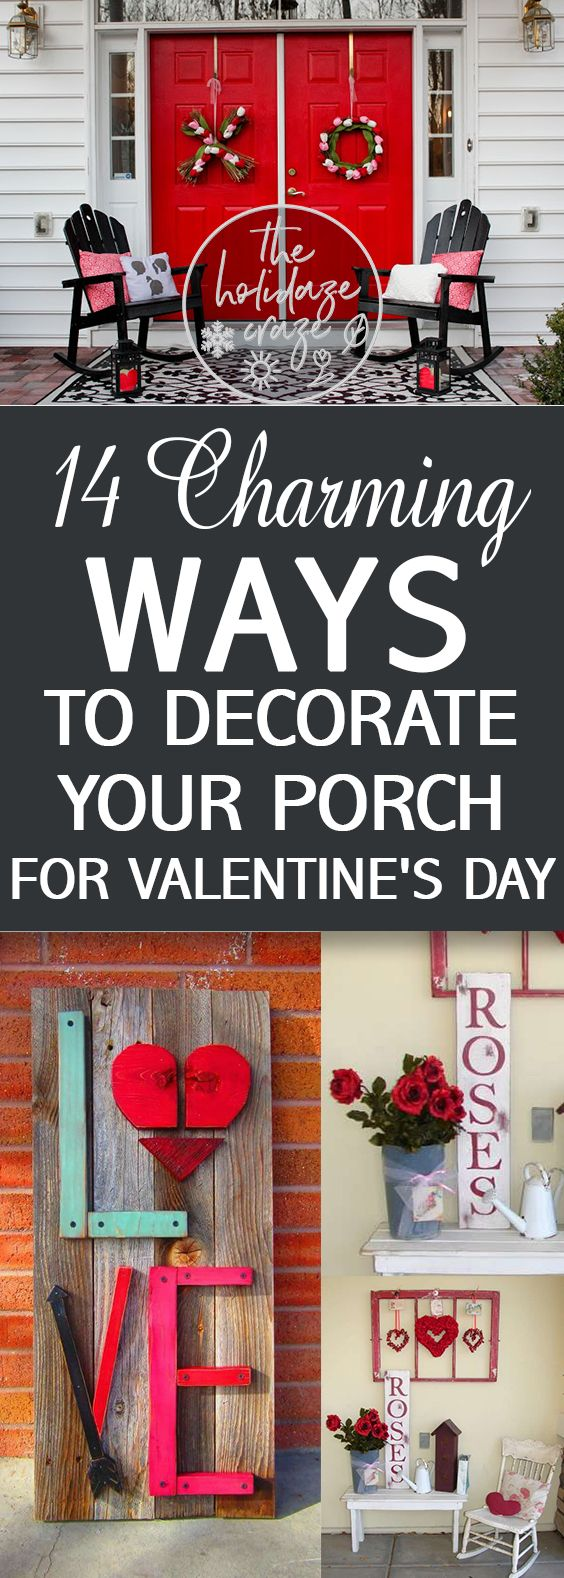 14 Charming Ways to Decorate Your Porch for Valentine's Day| Valentines Day, Valentines Day Porch Decor, Holiday Porch Decor, DIY Holiday Porch Decor, Porch, Porch Stuff, Popular Pin #ValentinesDay #PorchDecor